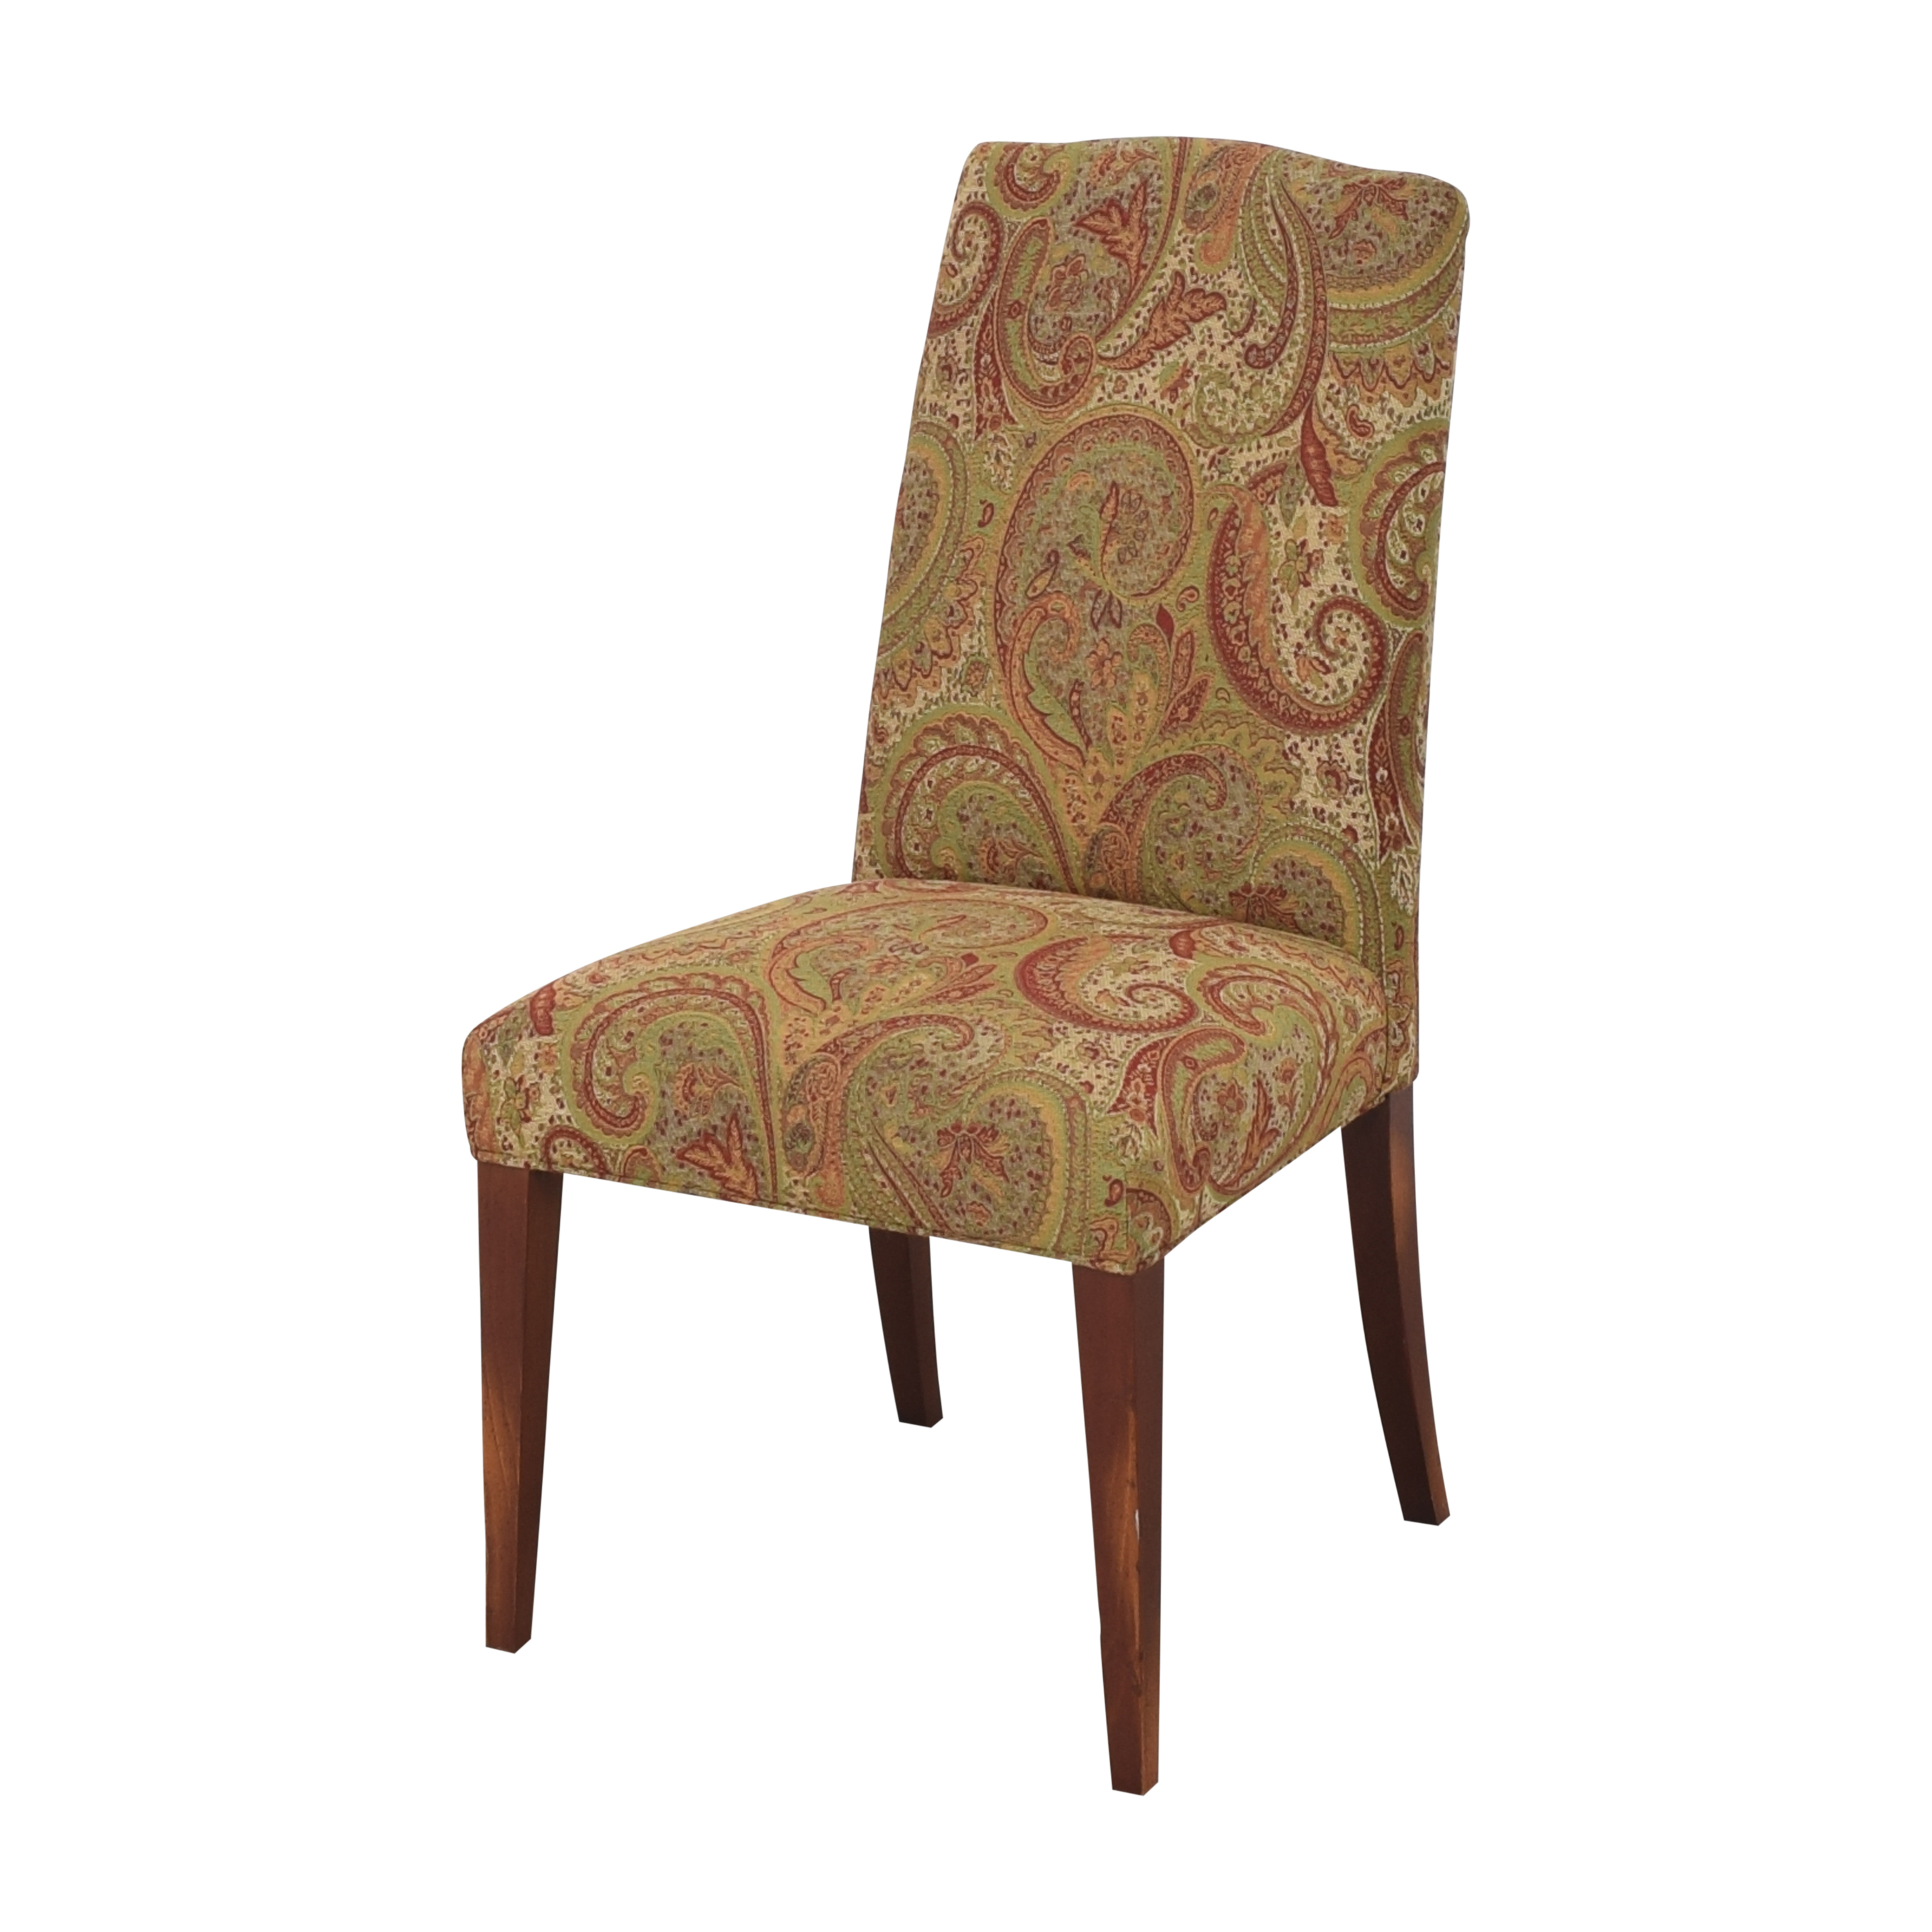 Saloom Saloom Model 61 Upholstered Dining Side Chairs Chairs